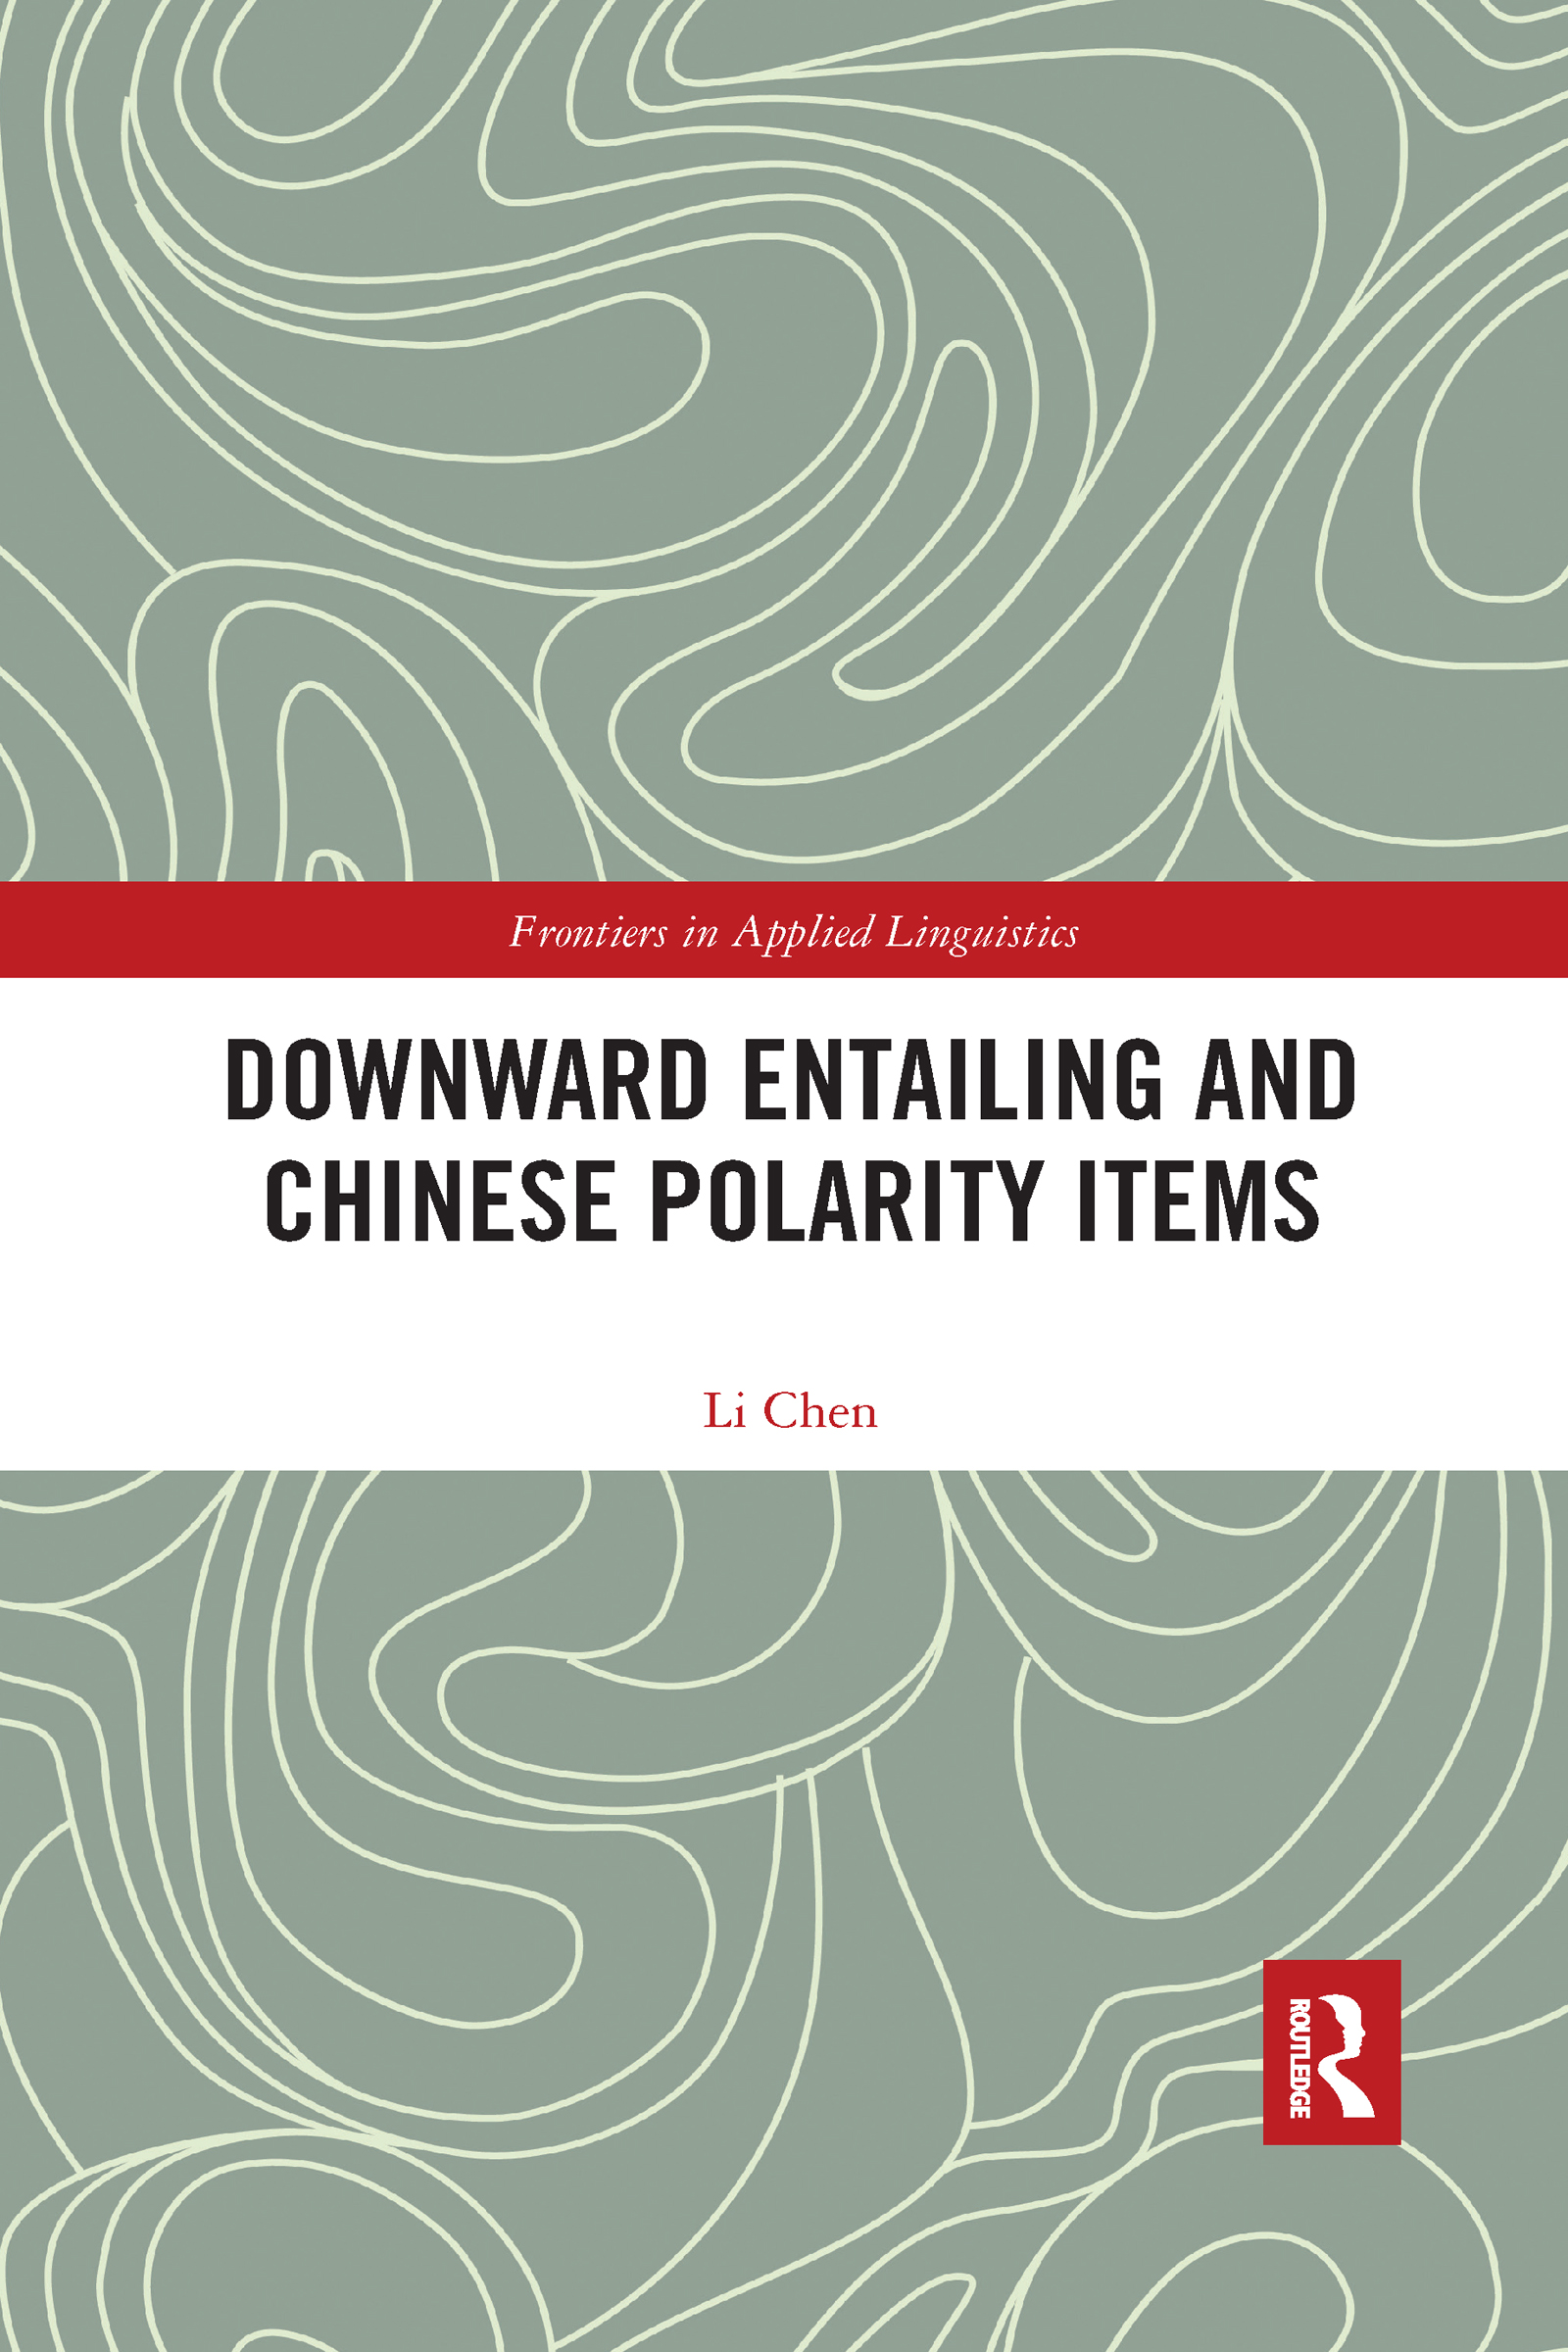 Downward Entailing and Chinese Polarity Items